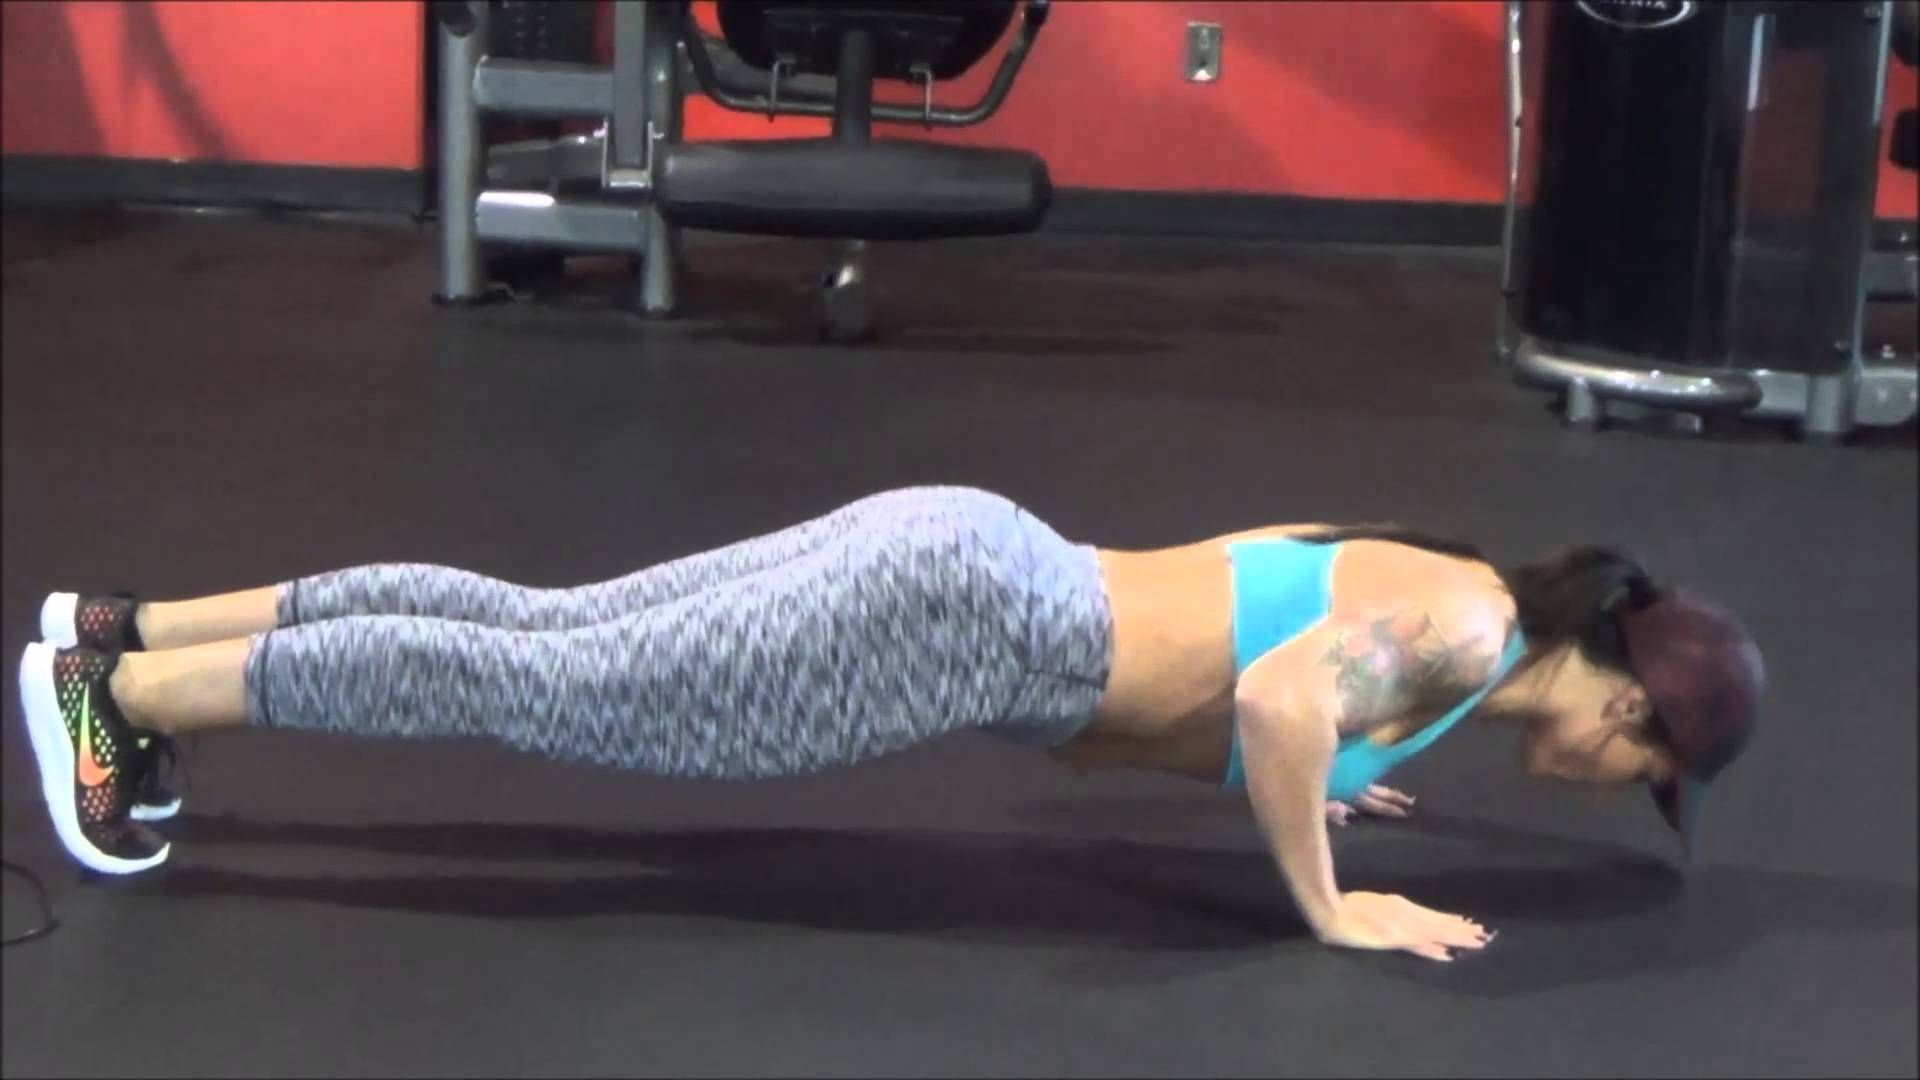 Mah-Ann's Pro Fitness (With images) | Pro fitness, Workout